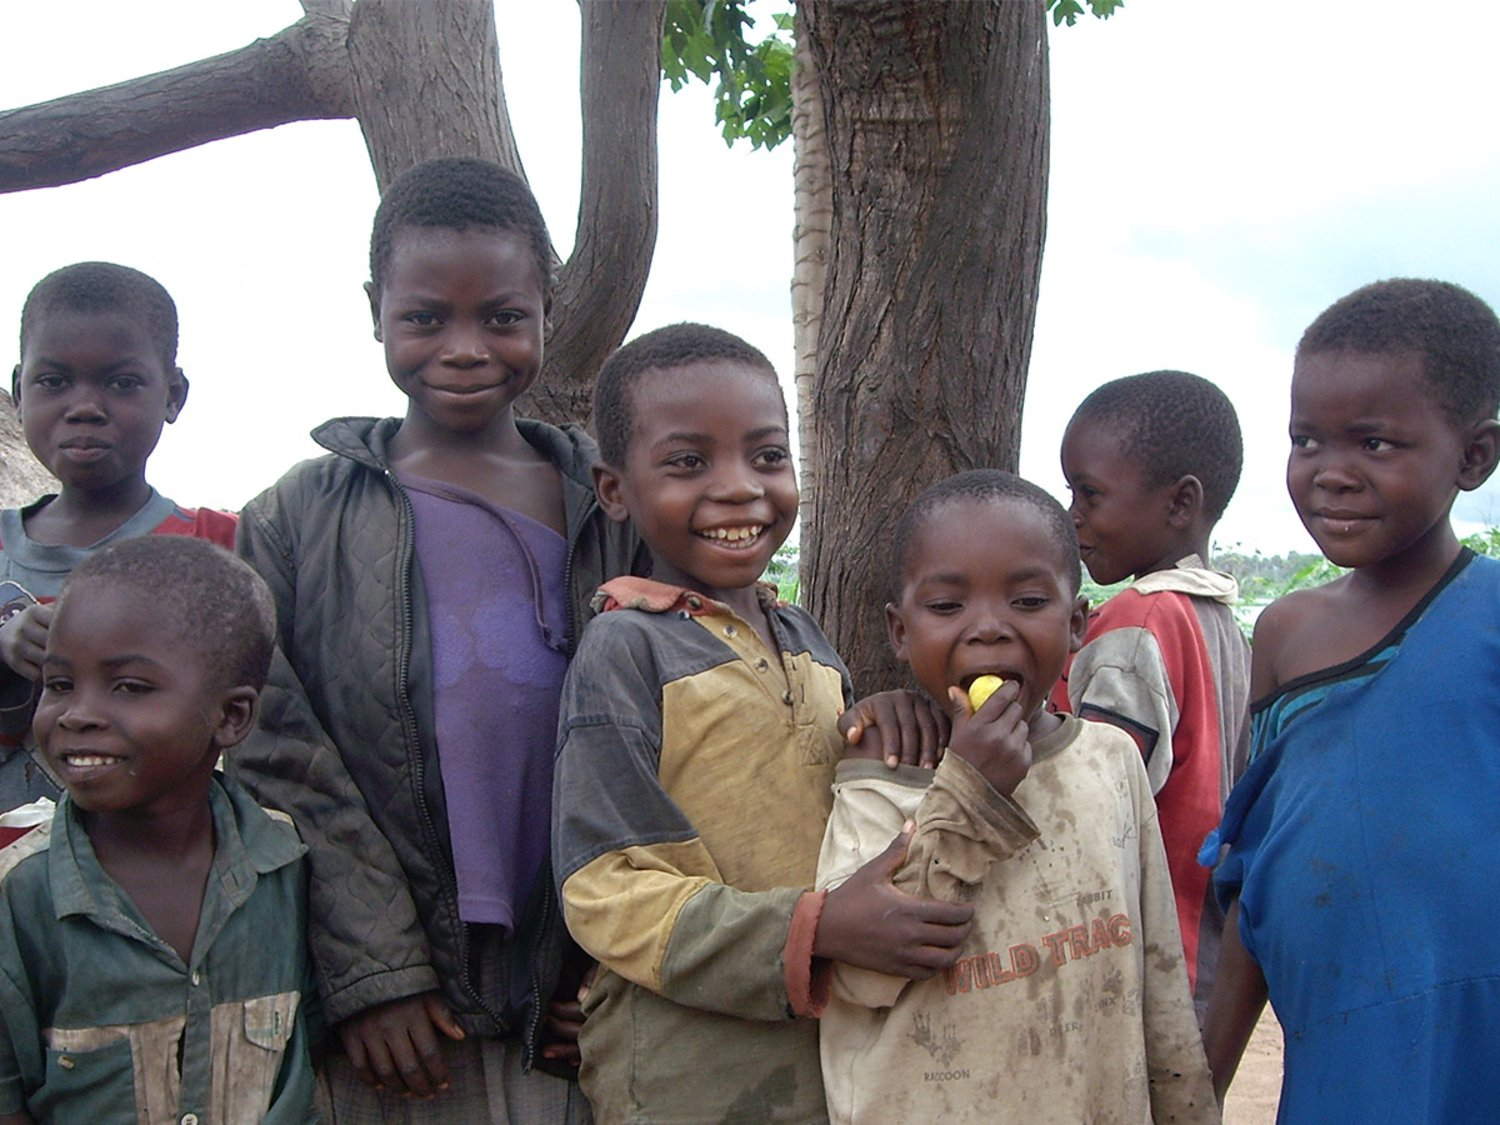 Children in DR Congo